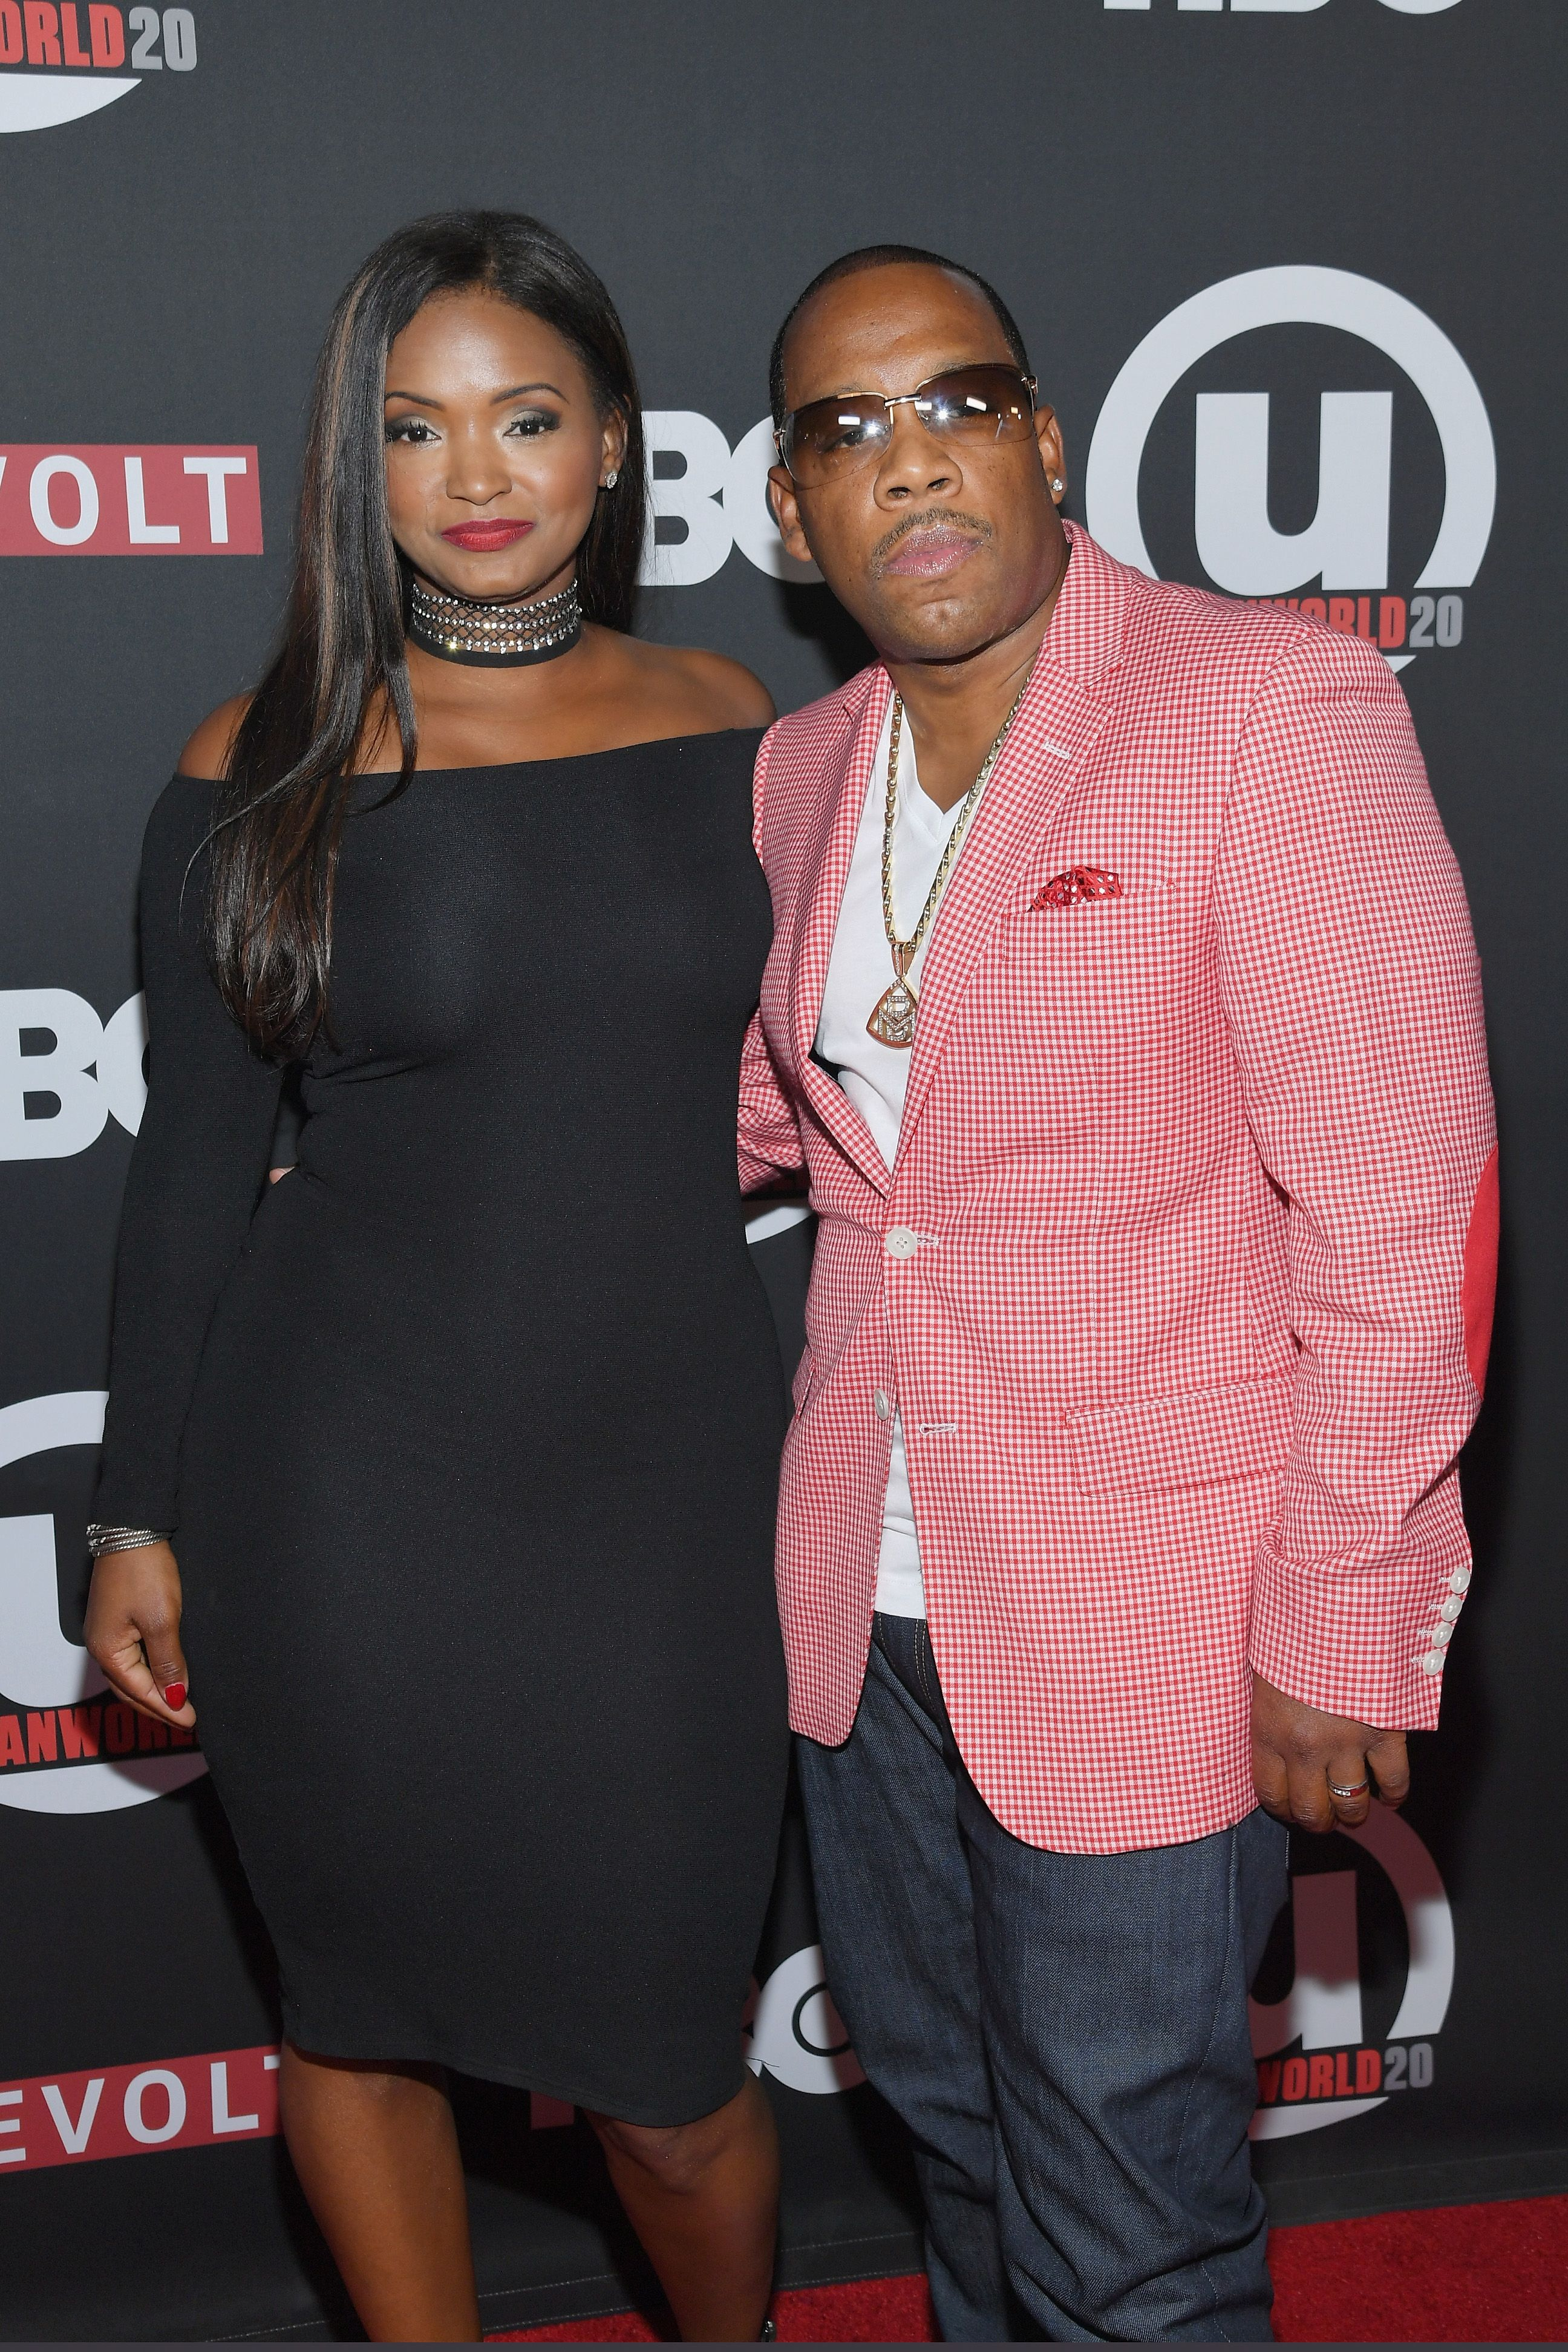 Teasha Bivins and Michael Bivins at the 20th Annual Urbanworld Film Festival in 2016. | Source: Getty Images